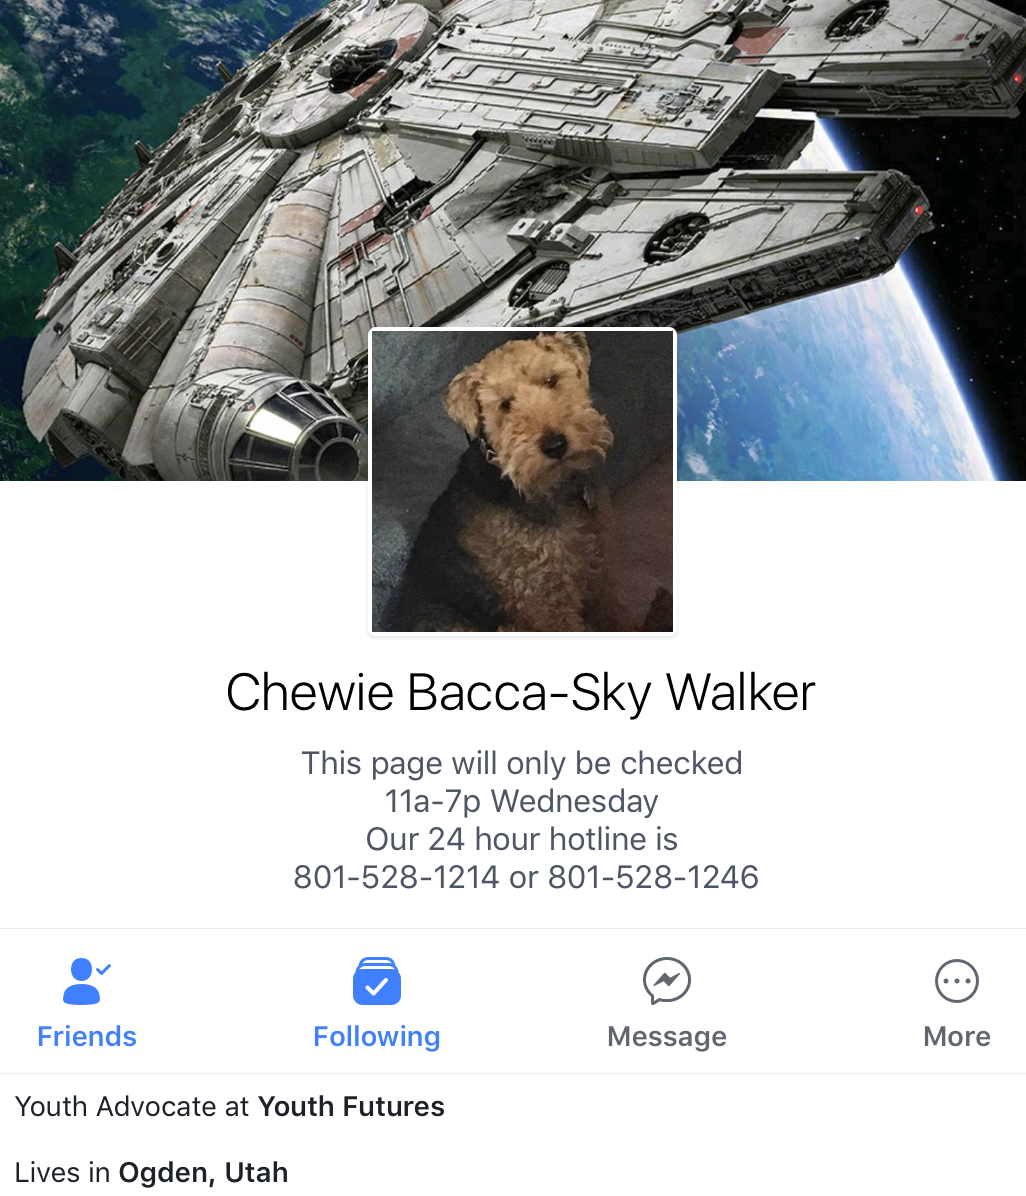 Watch for daily Facebook Posts from Chewie Bacca-Sky Walker